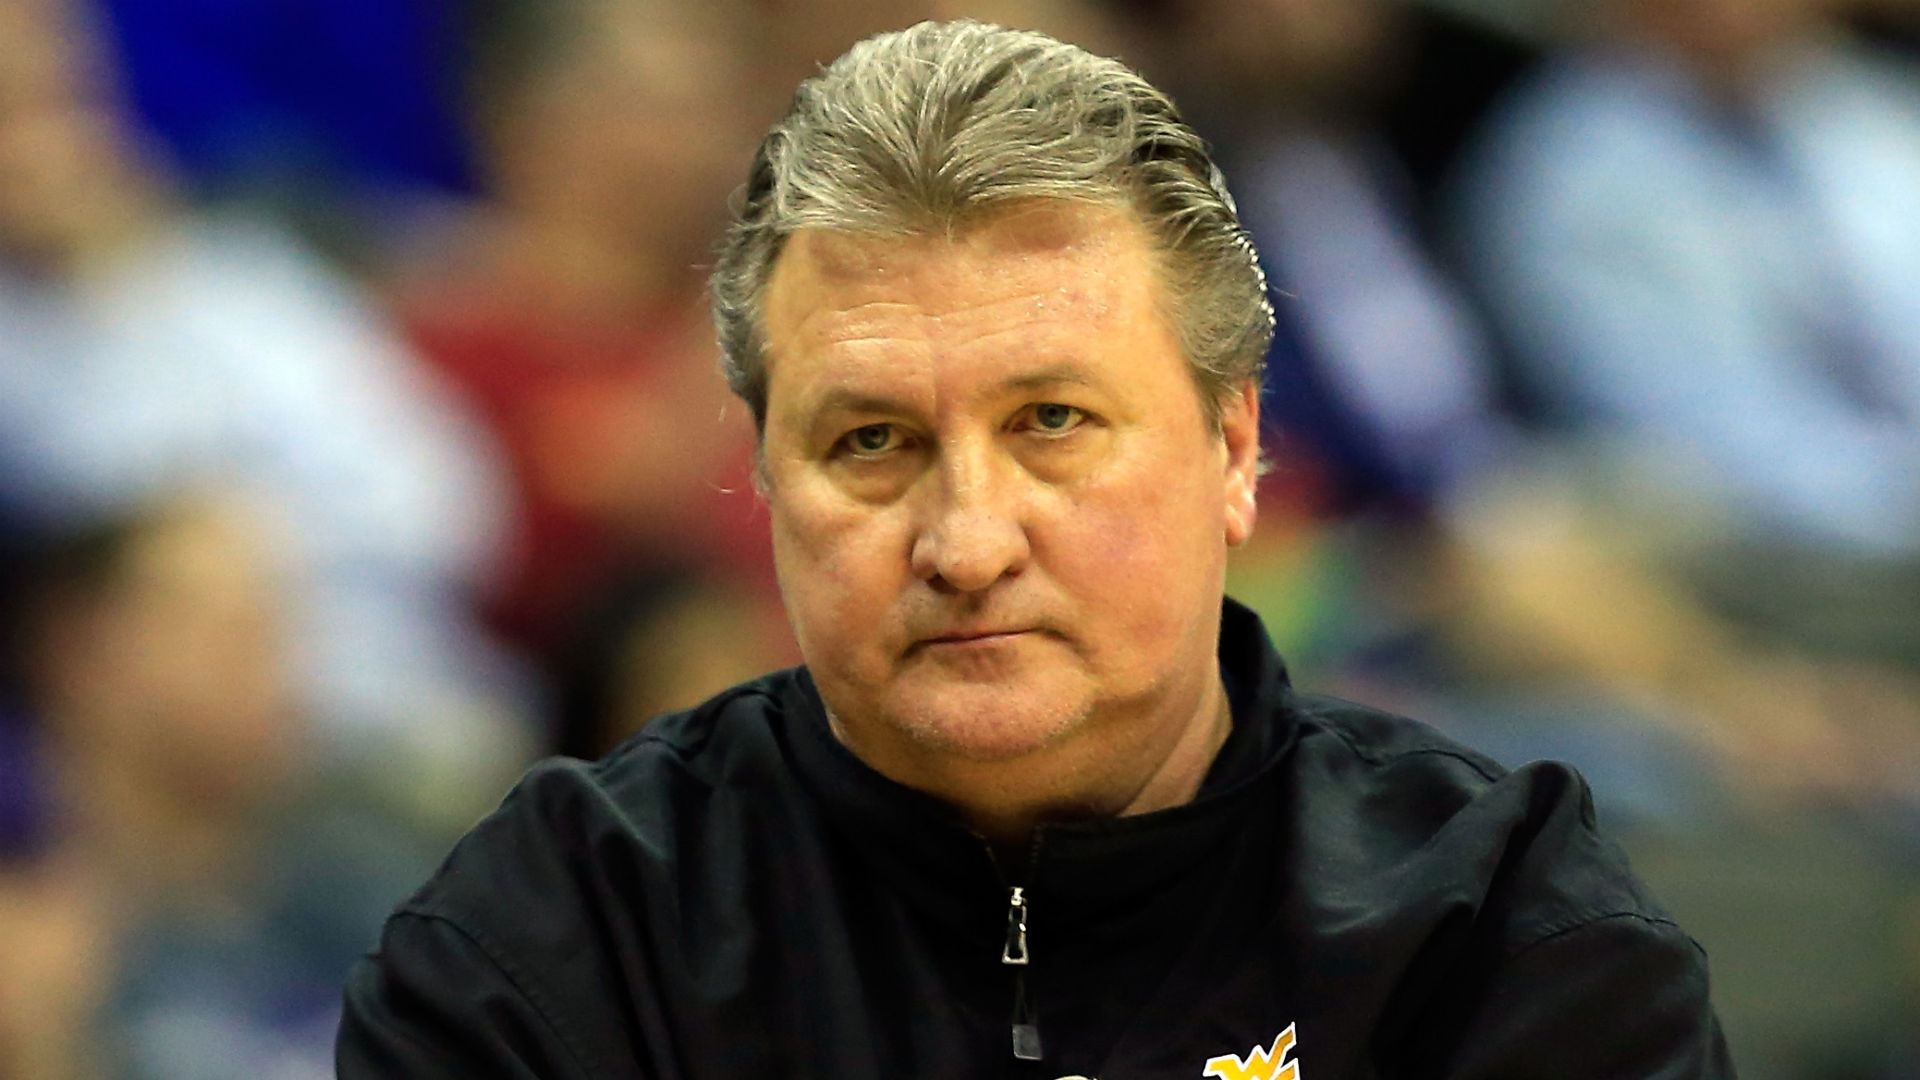 bob-huggins-092714-getty-ftr.jpg